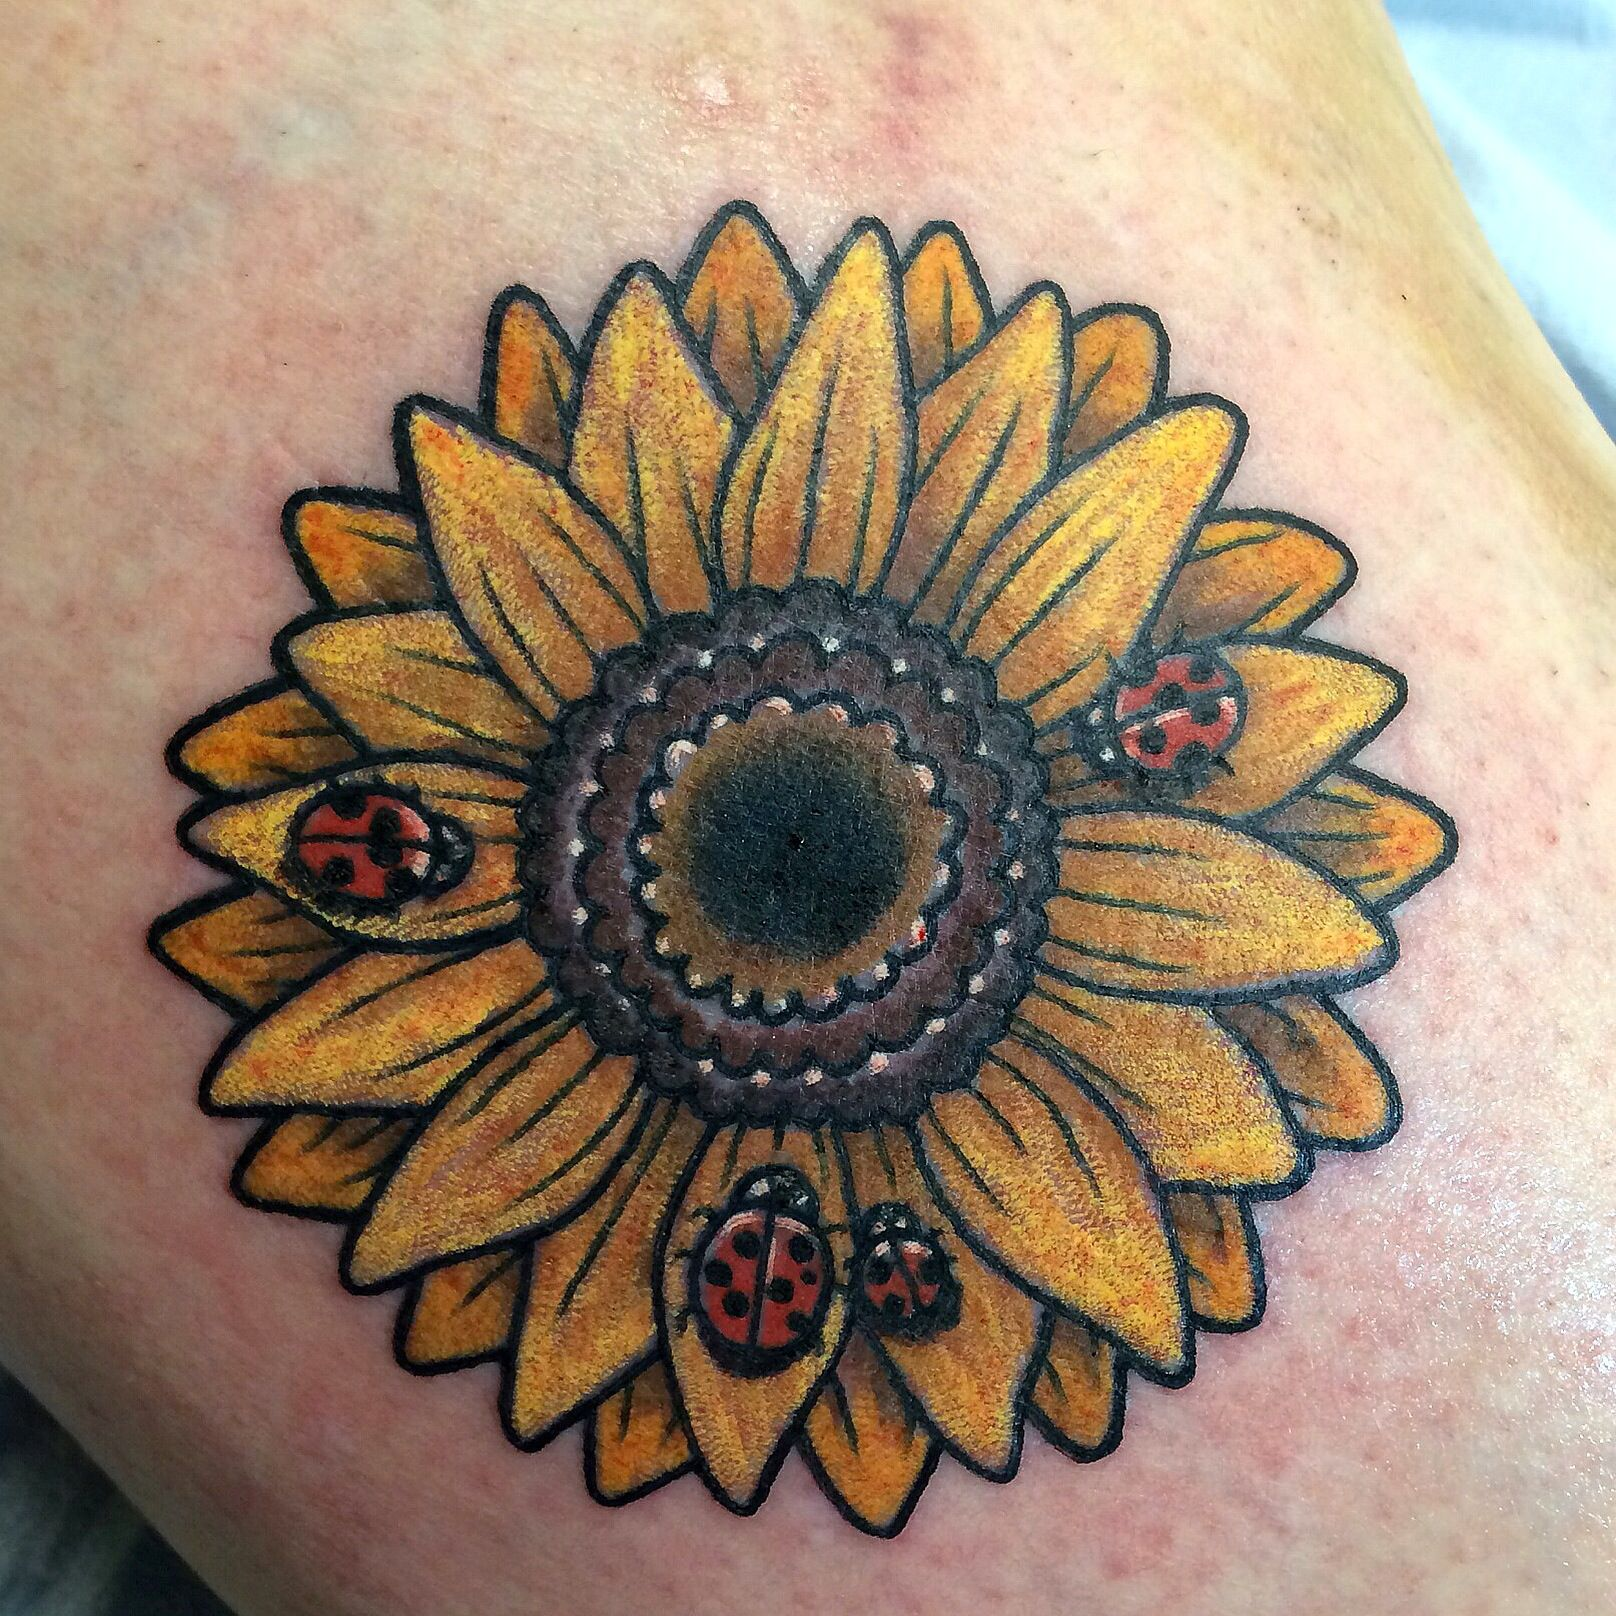 Photo of Sunflower with ladybugs tattoo. By Brandy Pouliot at Twisted Anchor Tattoo in Oc…